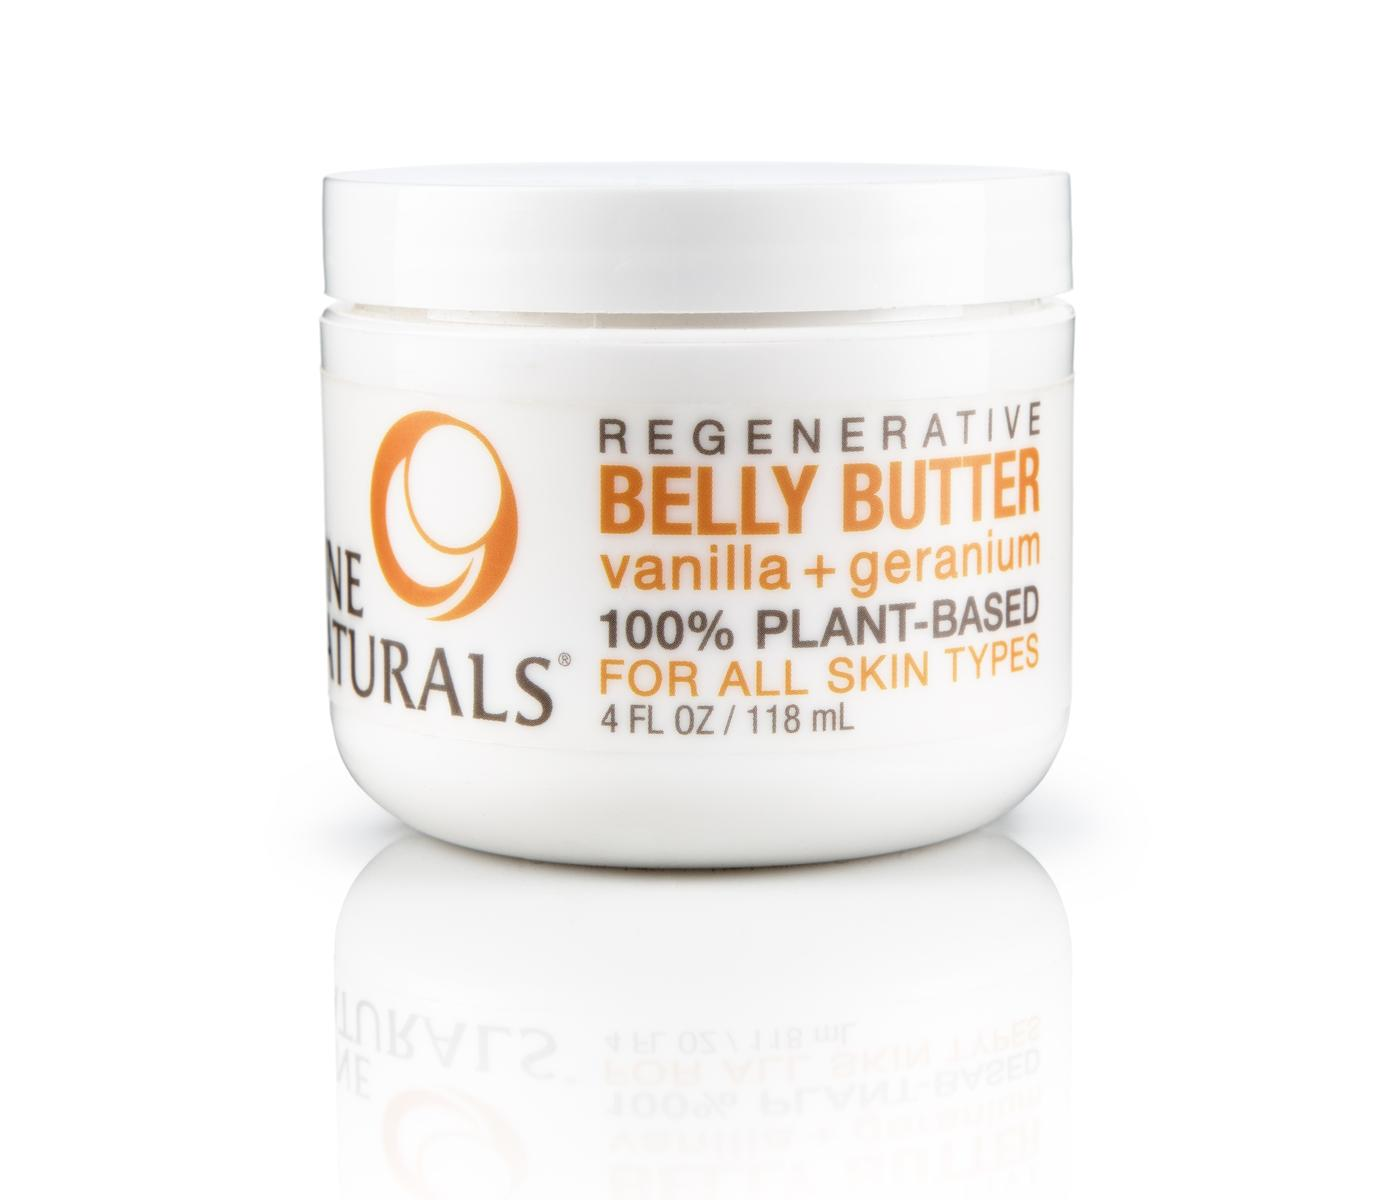 Nine Naturals Vanilla and Geranium Regenerative Pregnancy Belly Butter & Stretch Mark Cream